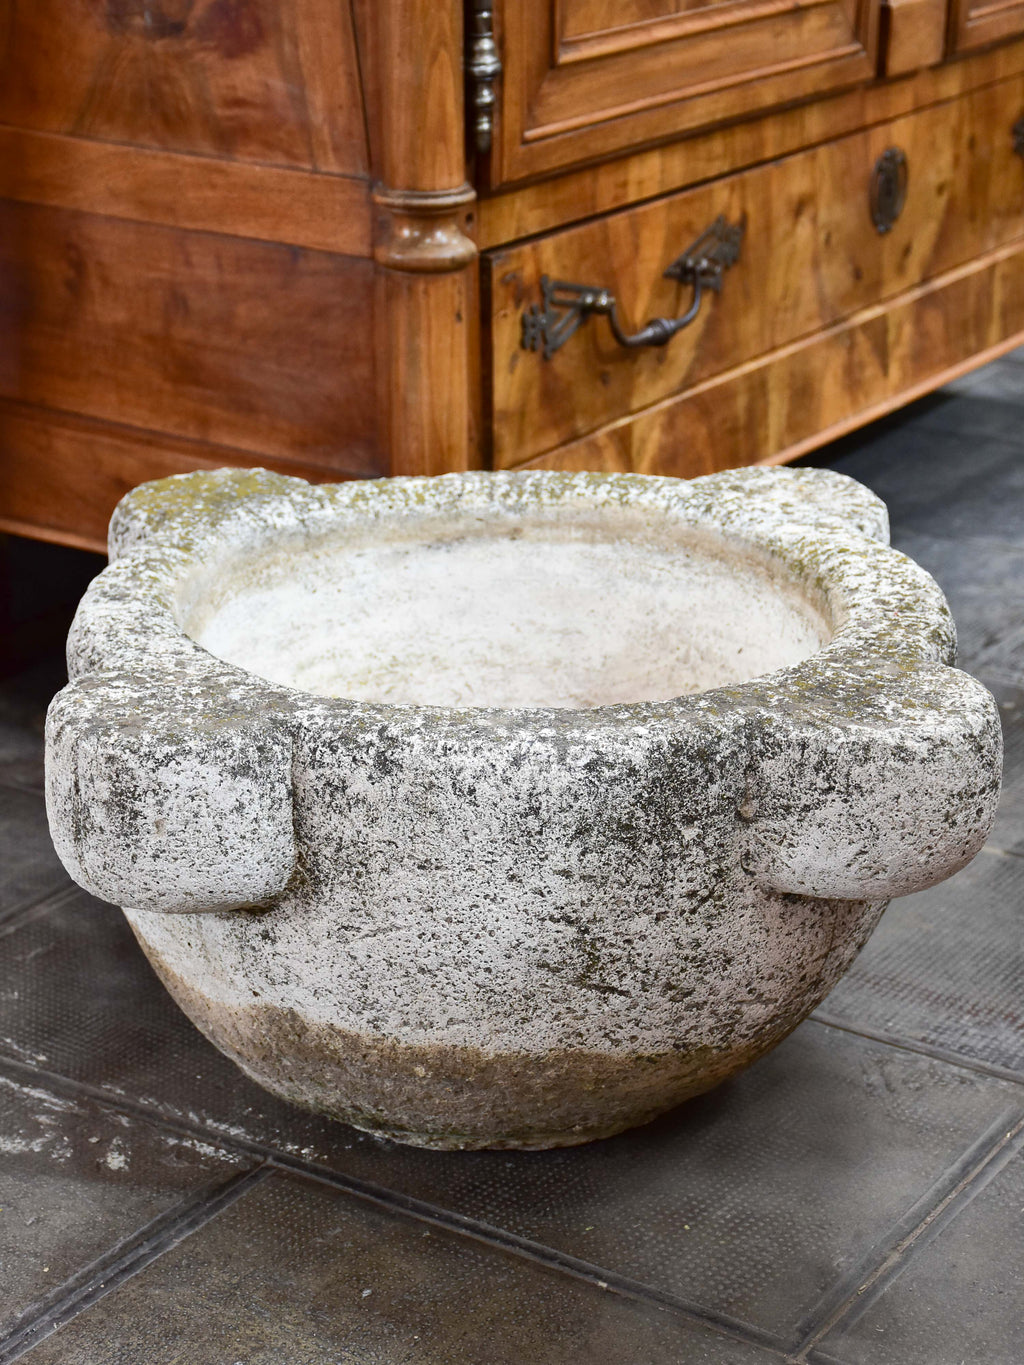 Very large concrete mortar planter from Les Alpilles, Provence